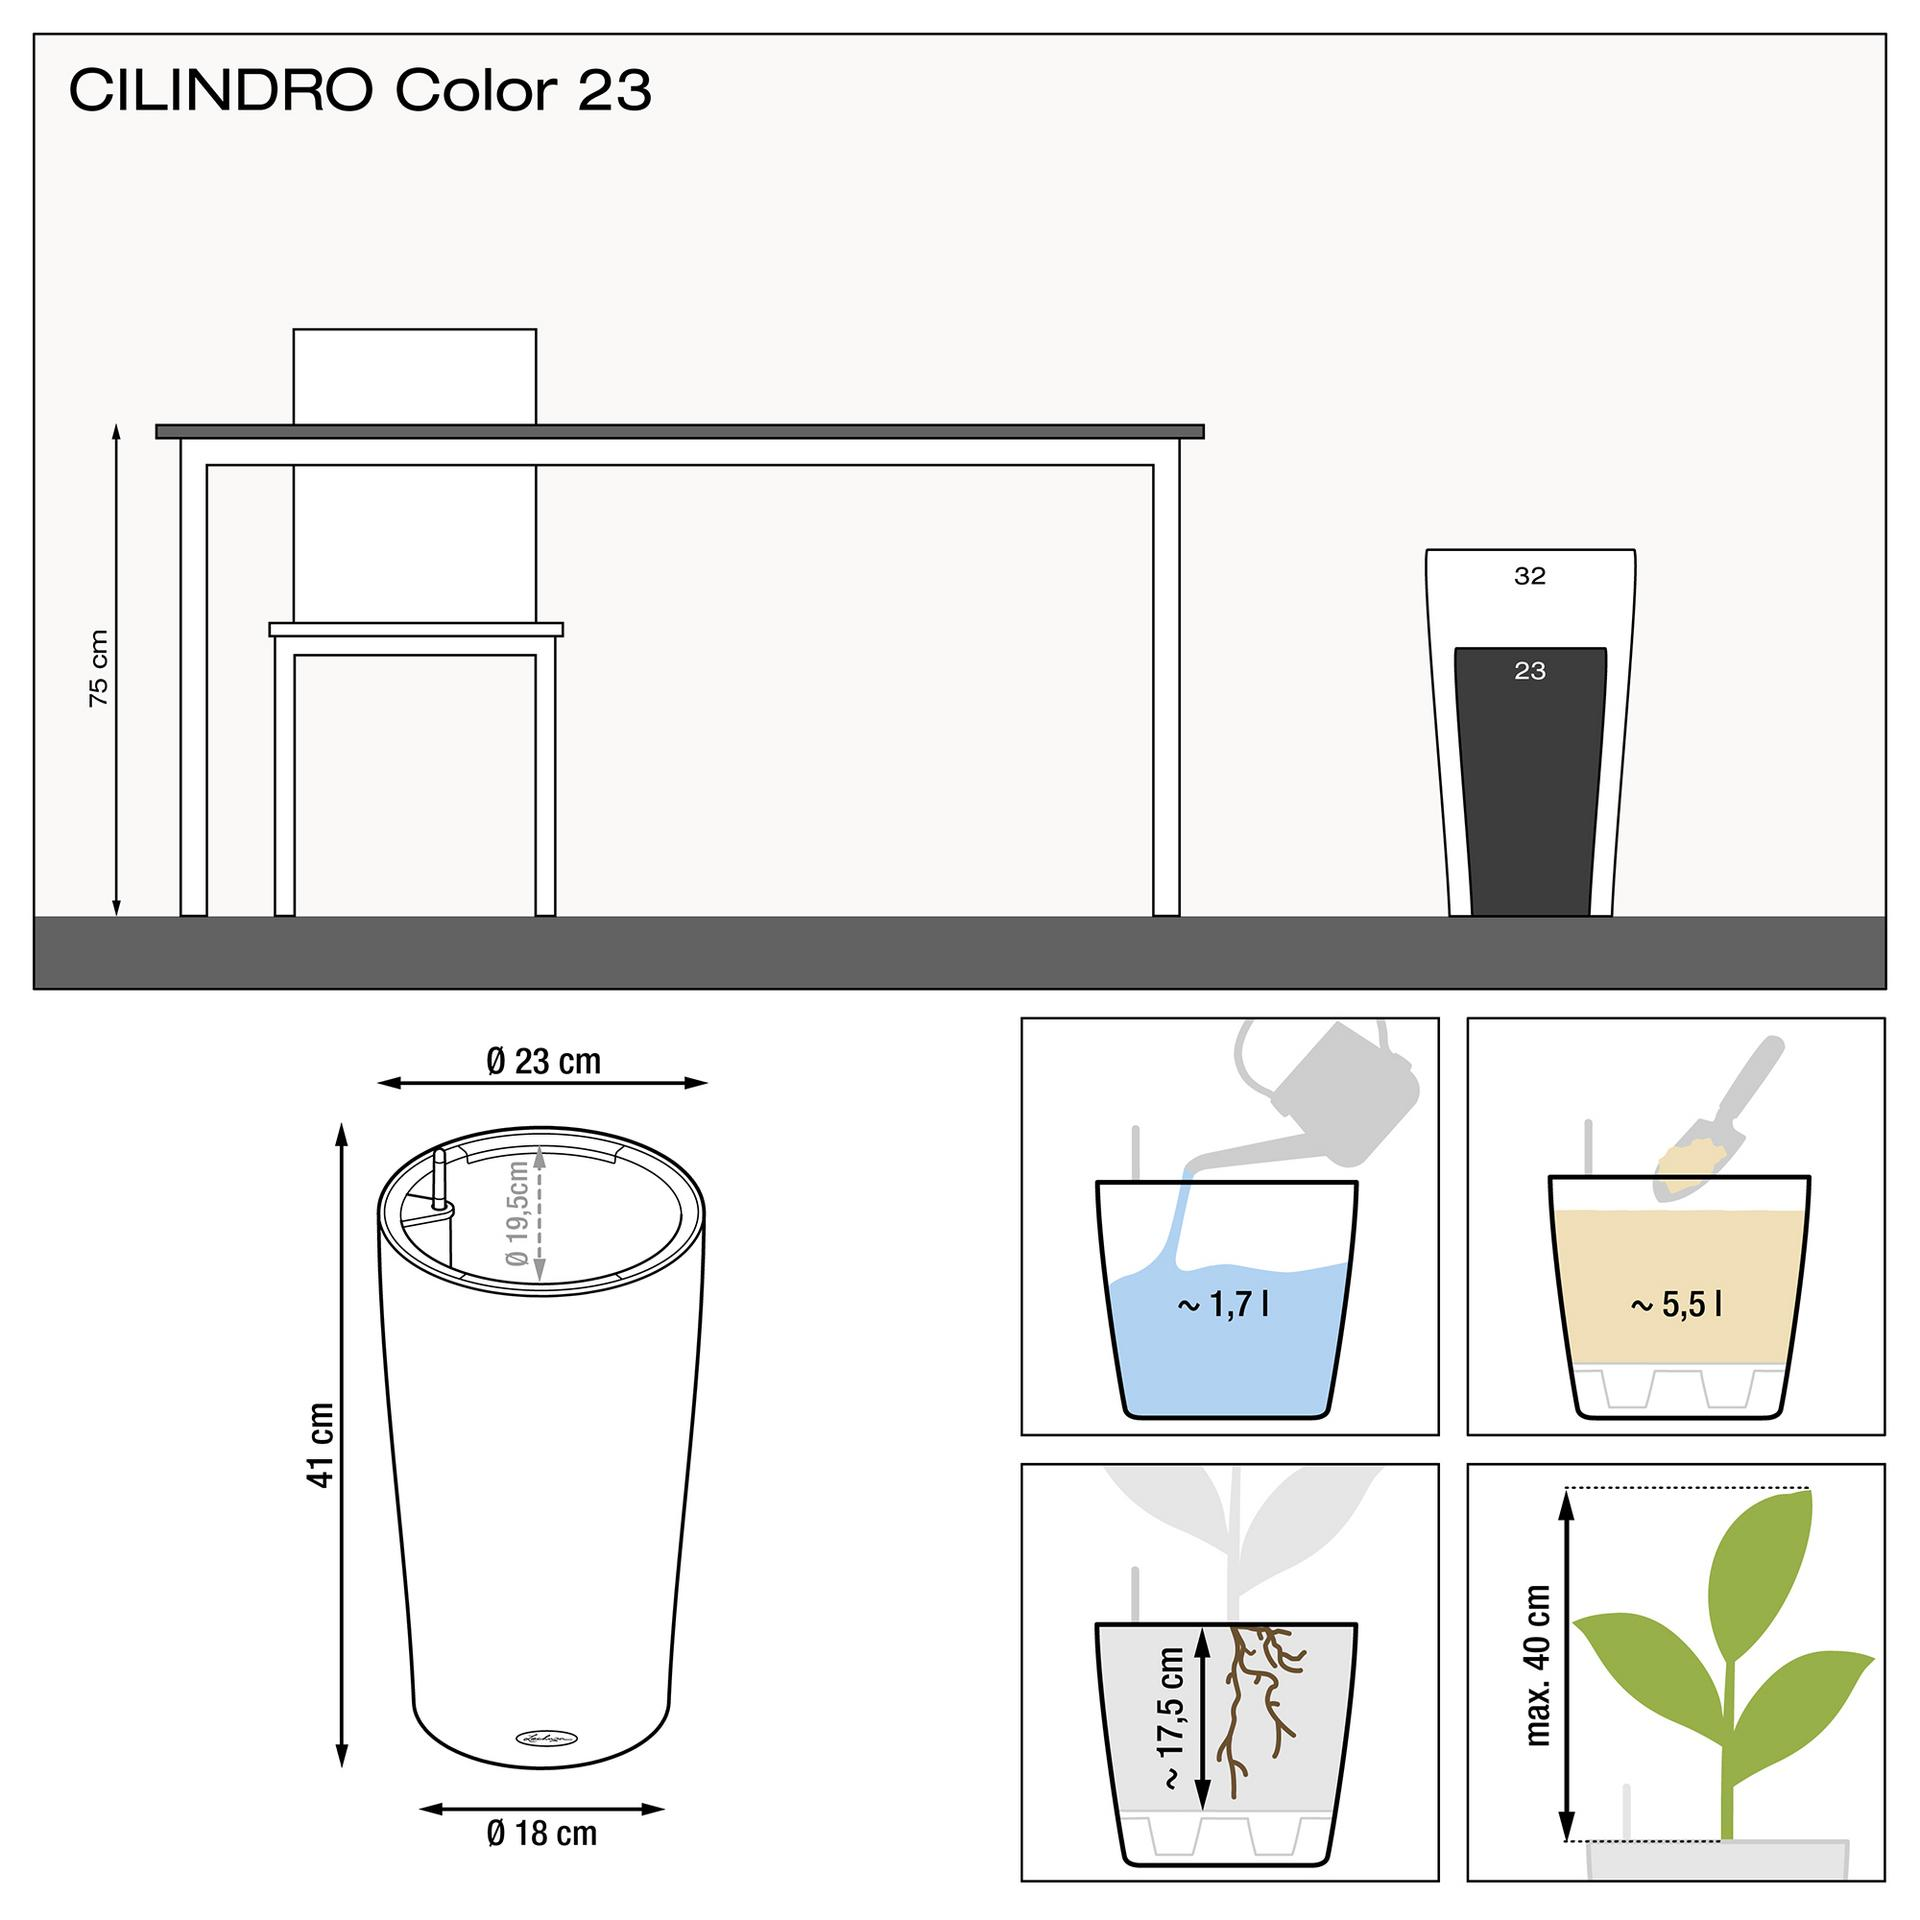 le_cilindro-color23_product_addi_nz